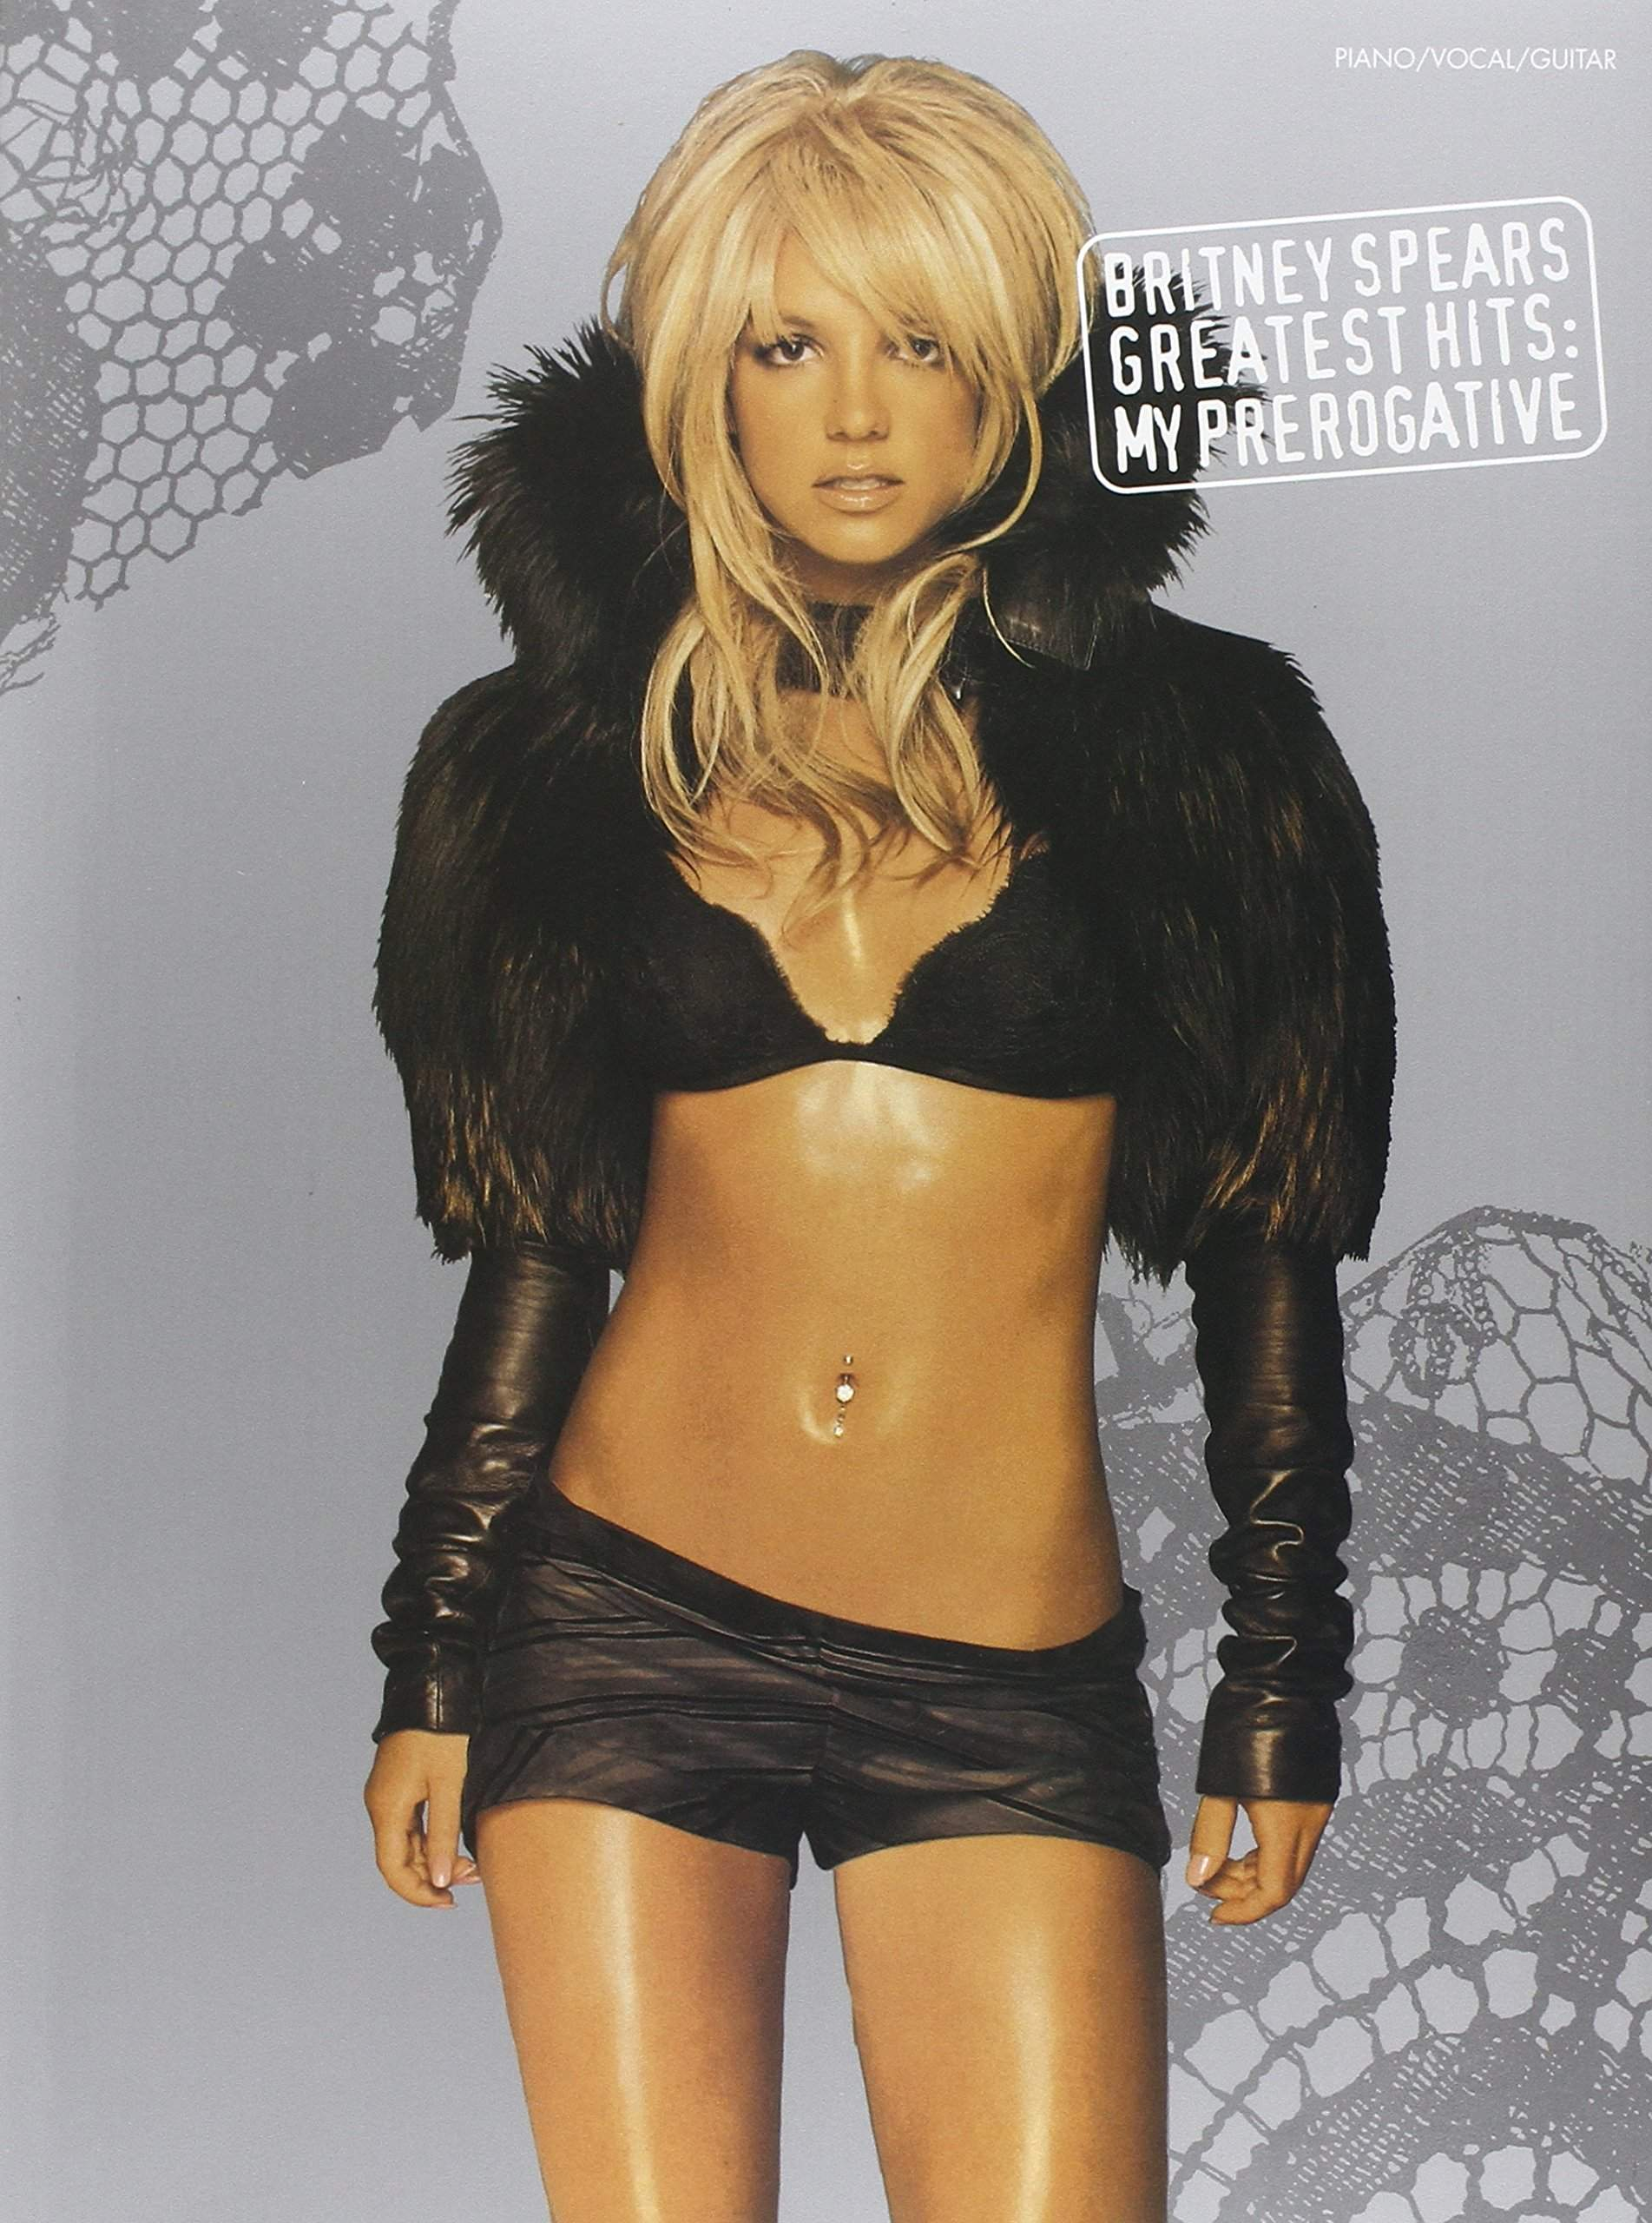 Greatest Hits: My Prerogative compilation album is released in 2004